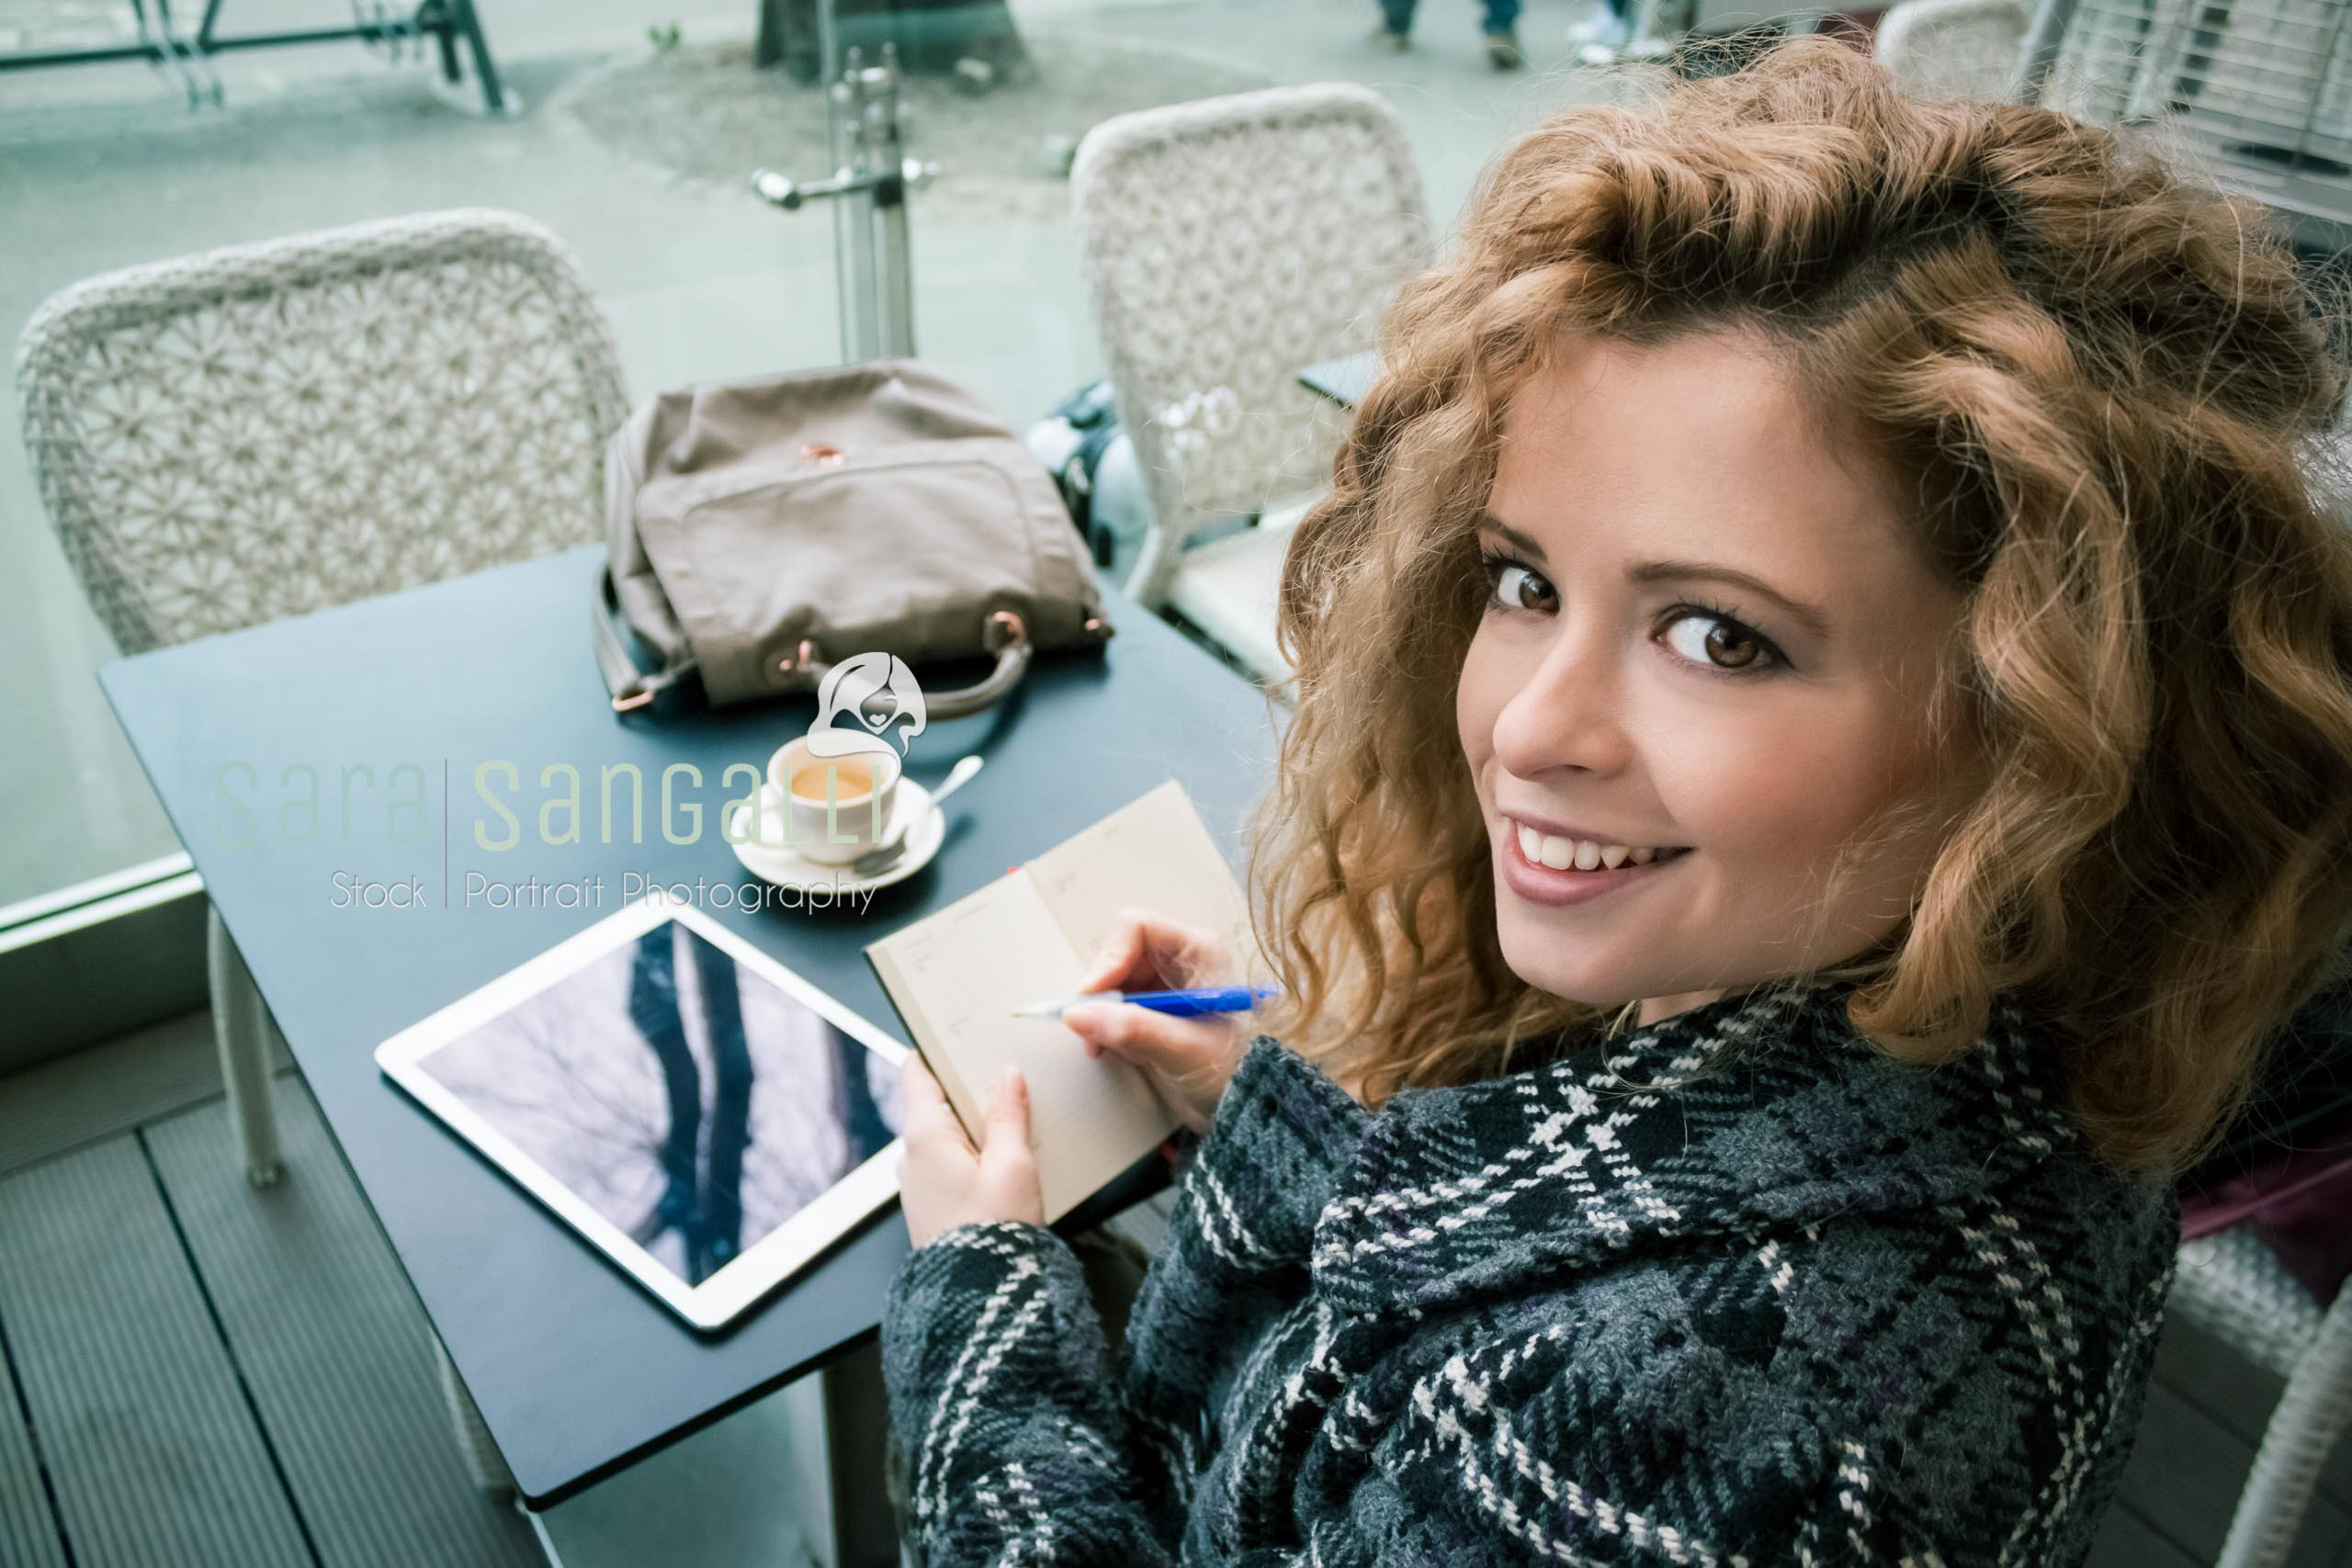 Young blonde woman taking a break at a coffee bar. Taking notes on a tablet and writing on her calendar